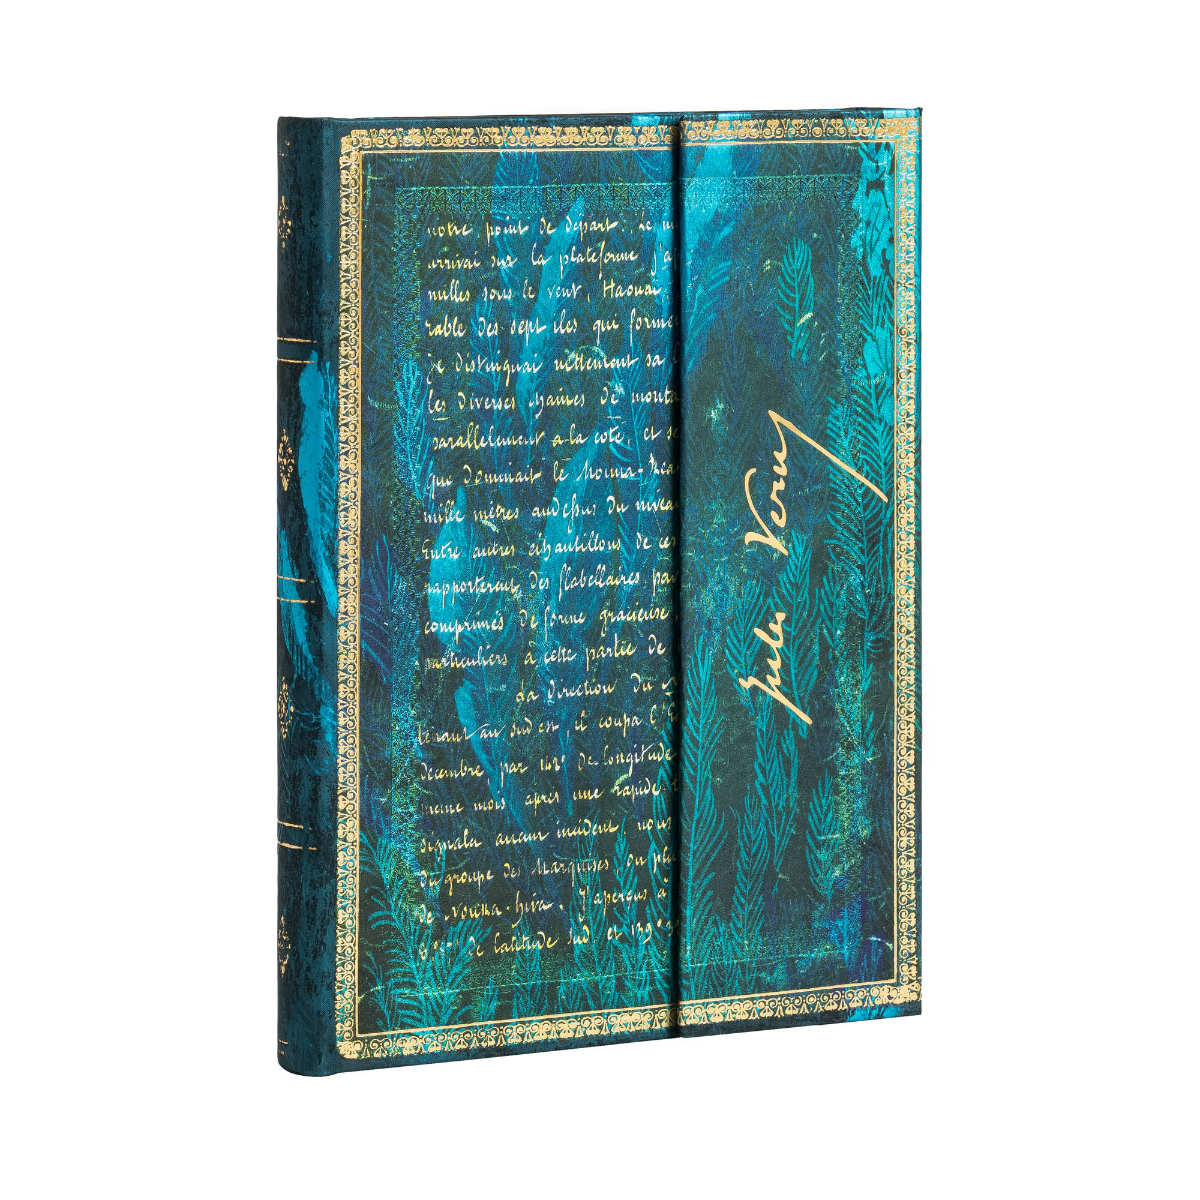 Paperblanks Verne Twenty Thousand Leagues Midi 5x7 Inch